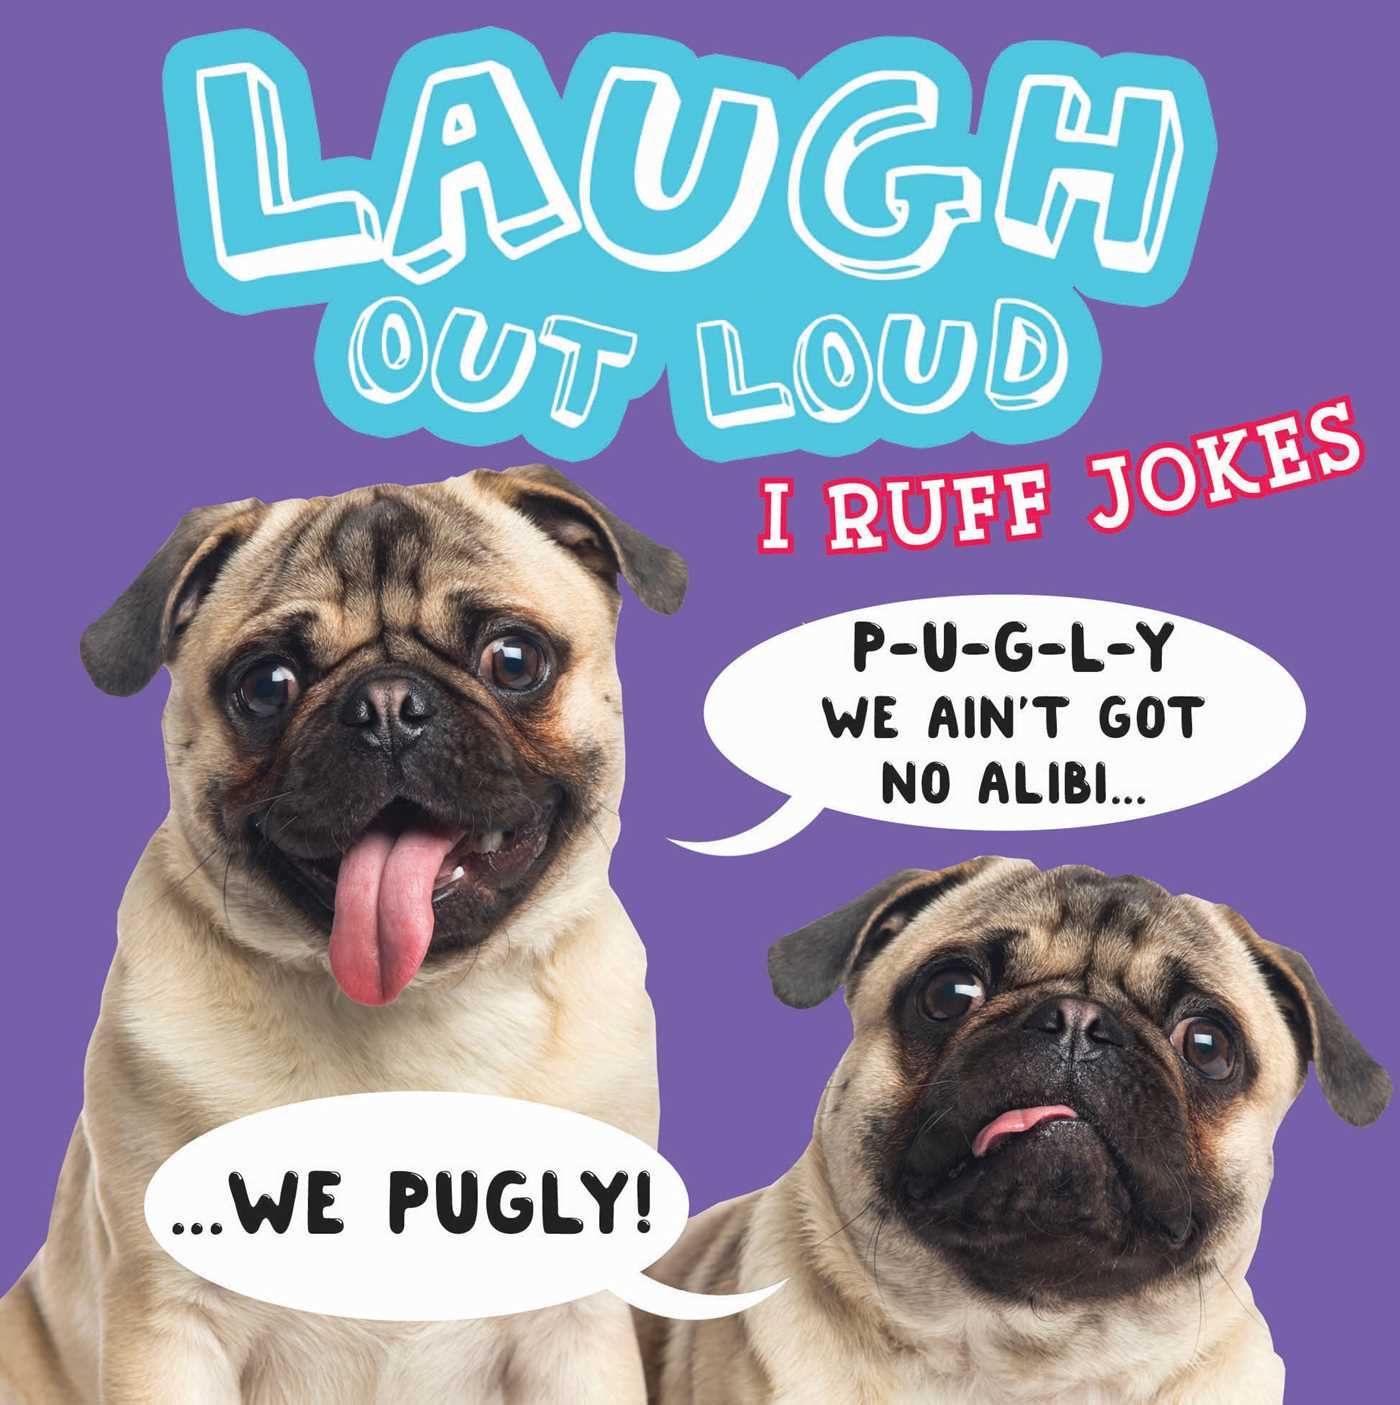 Laugh out loud i ruff jokes 9781534400290 hr